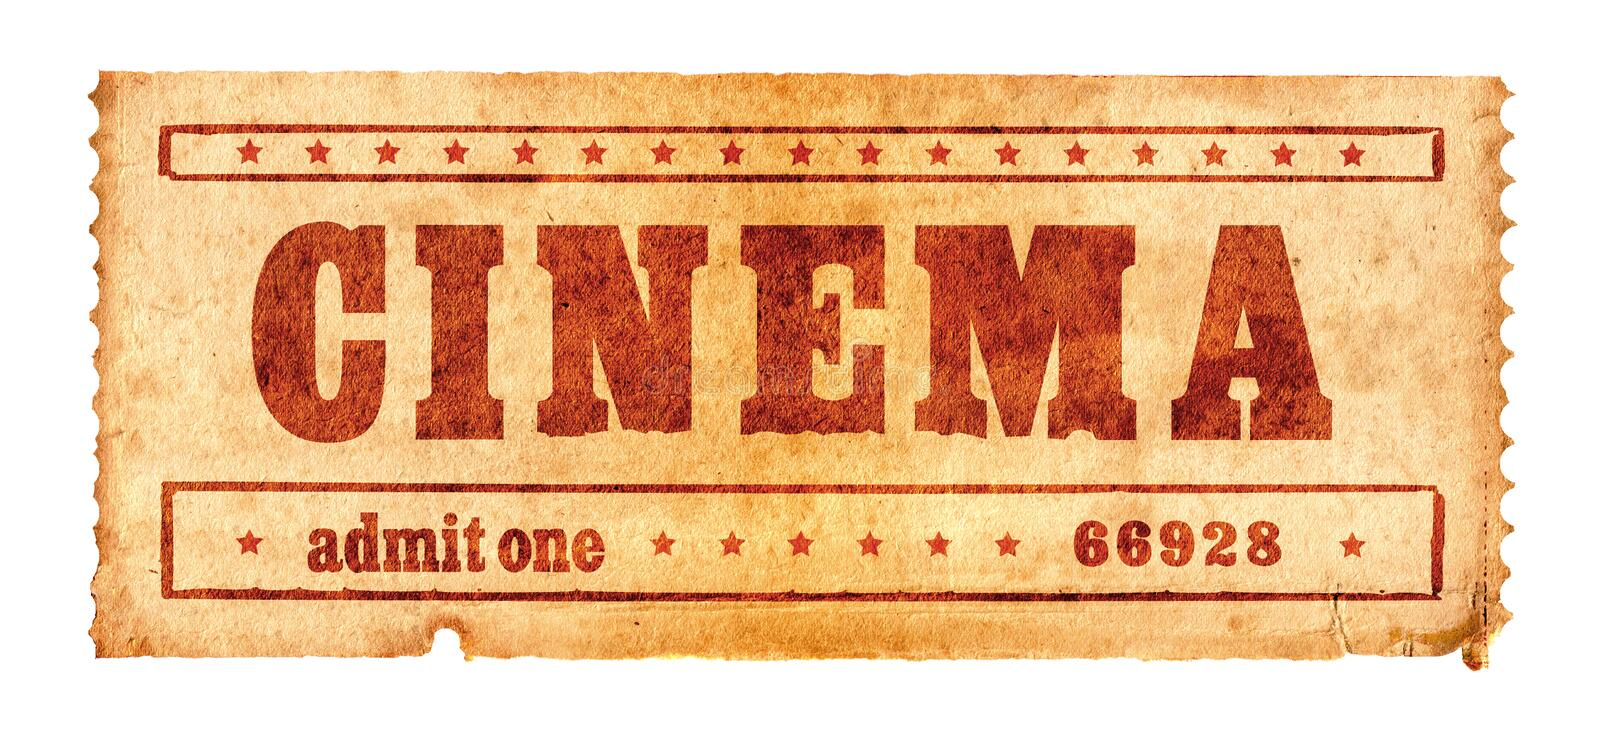 Aged cinema ticket 2. Second in the cinema ticket series